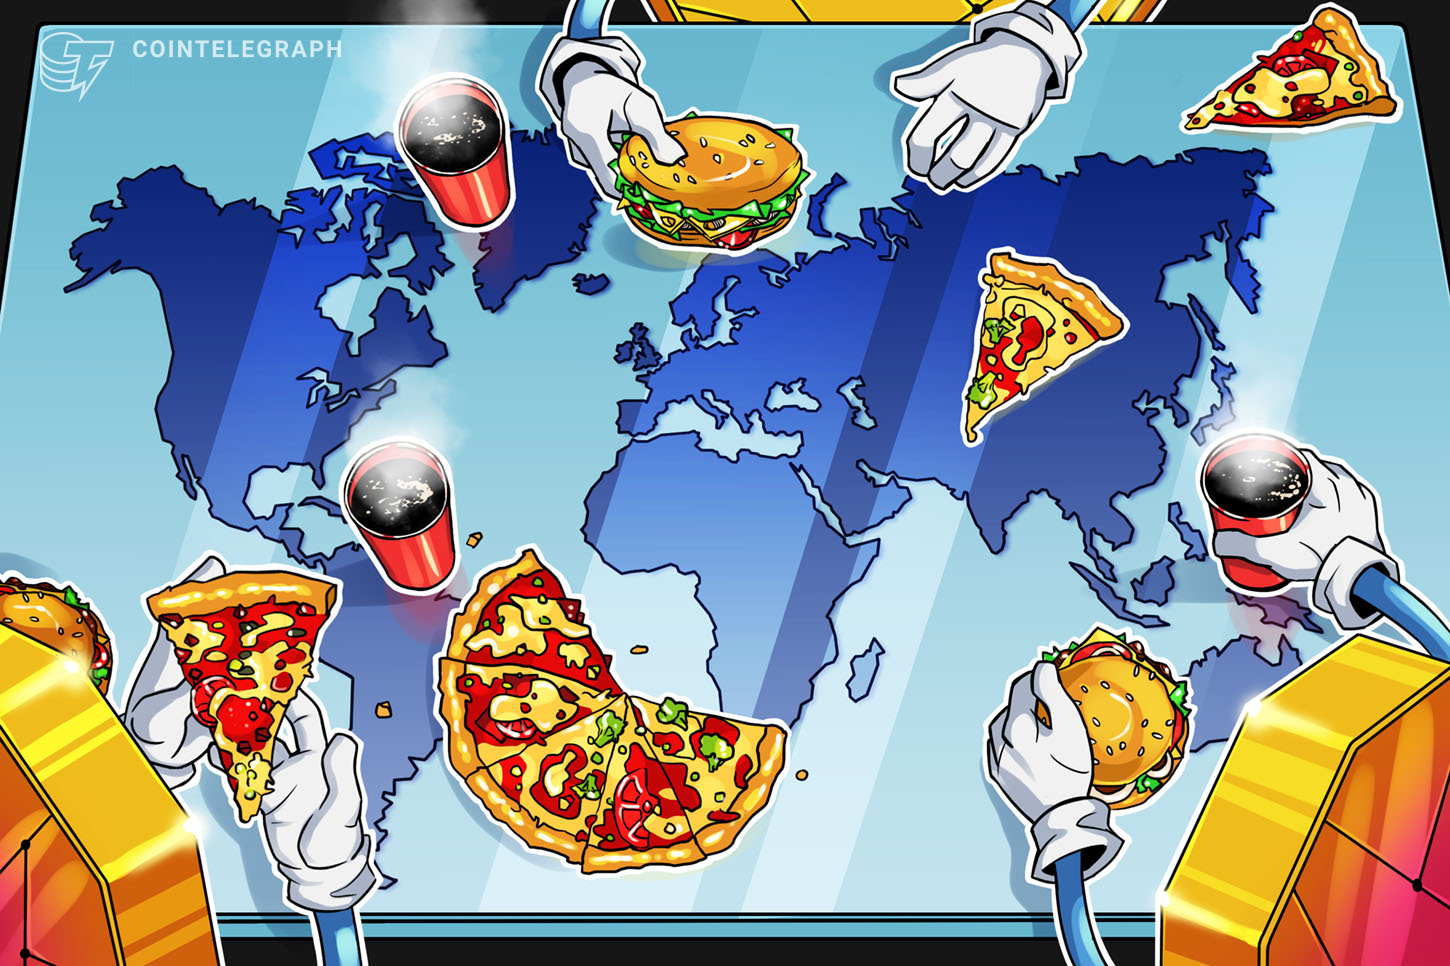 Cointelegraph Bitcoin Accepted Here Slippers Cryptocurrency Blockchain